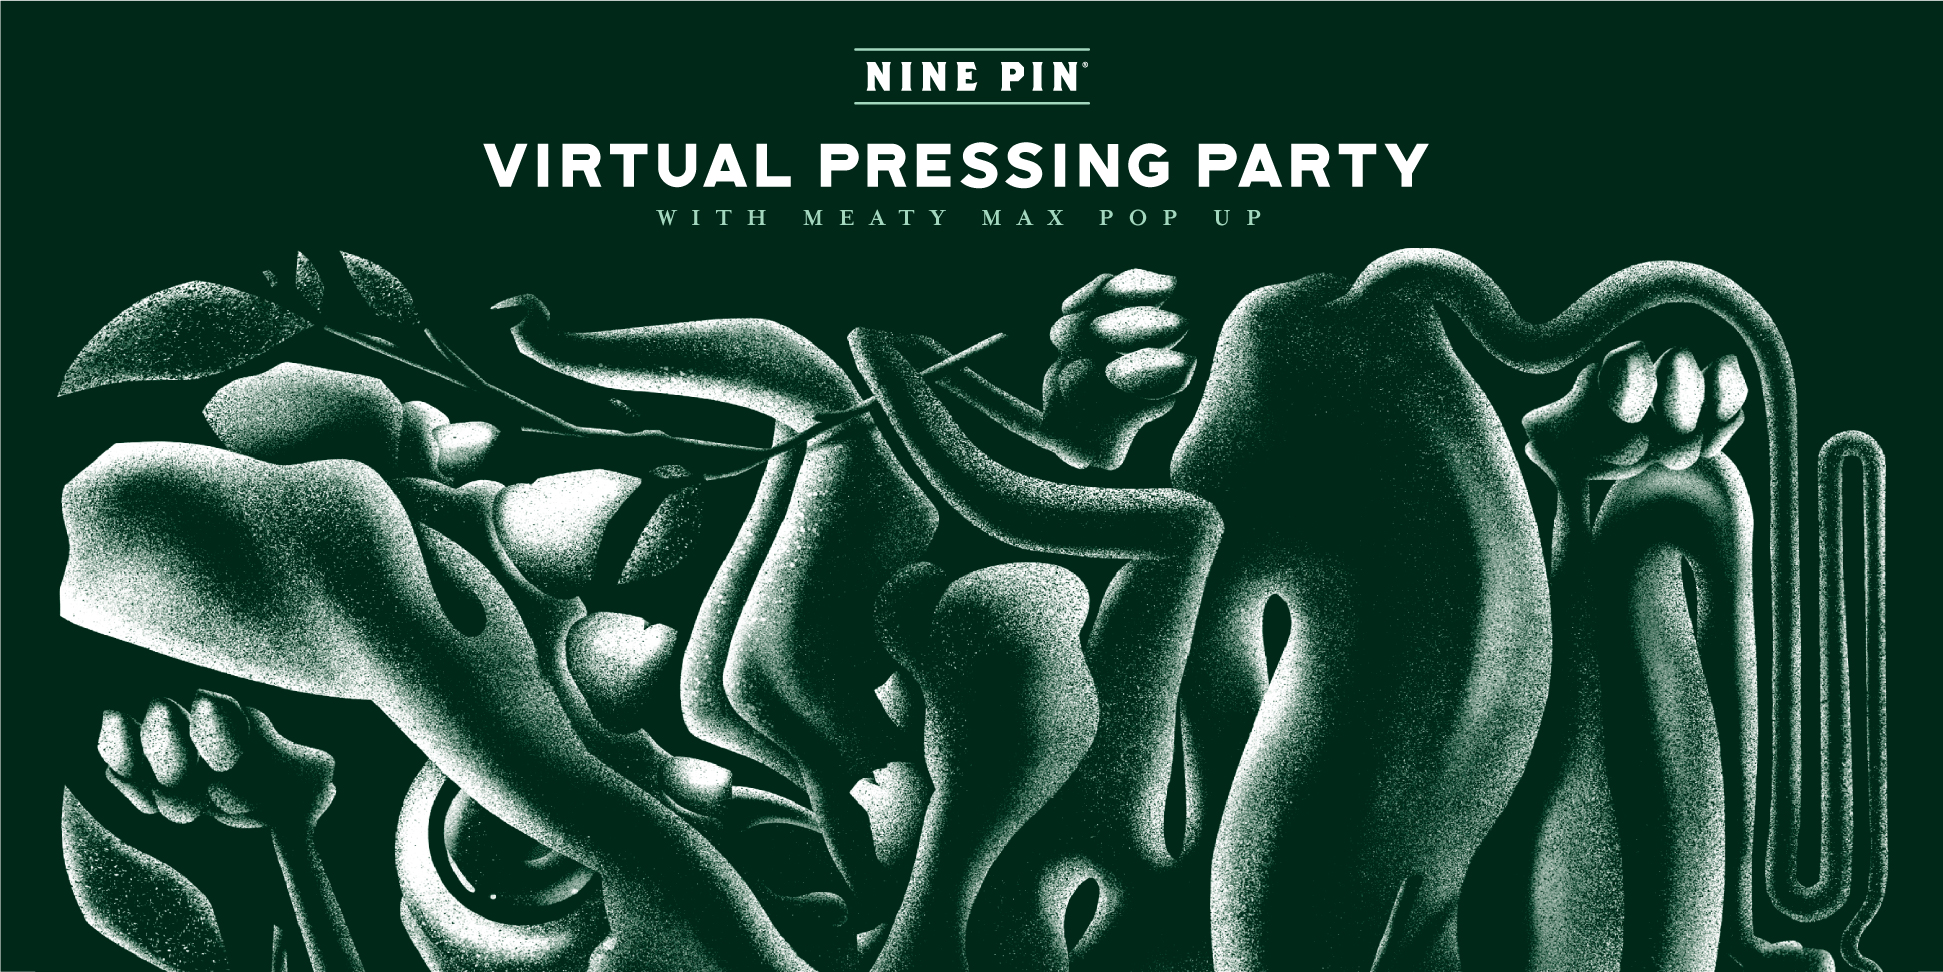 Grainy fluid image of a dragon monster. Text reads Nine Pin Virtual Pressing Party featuring Meaty Max pop up.